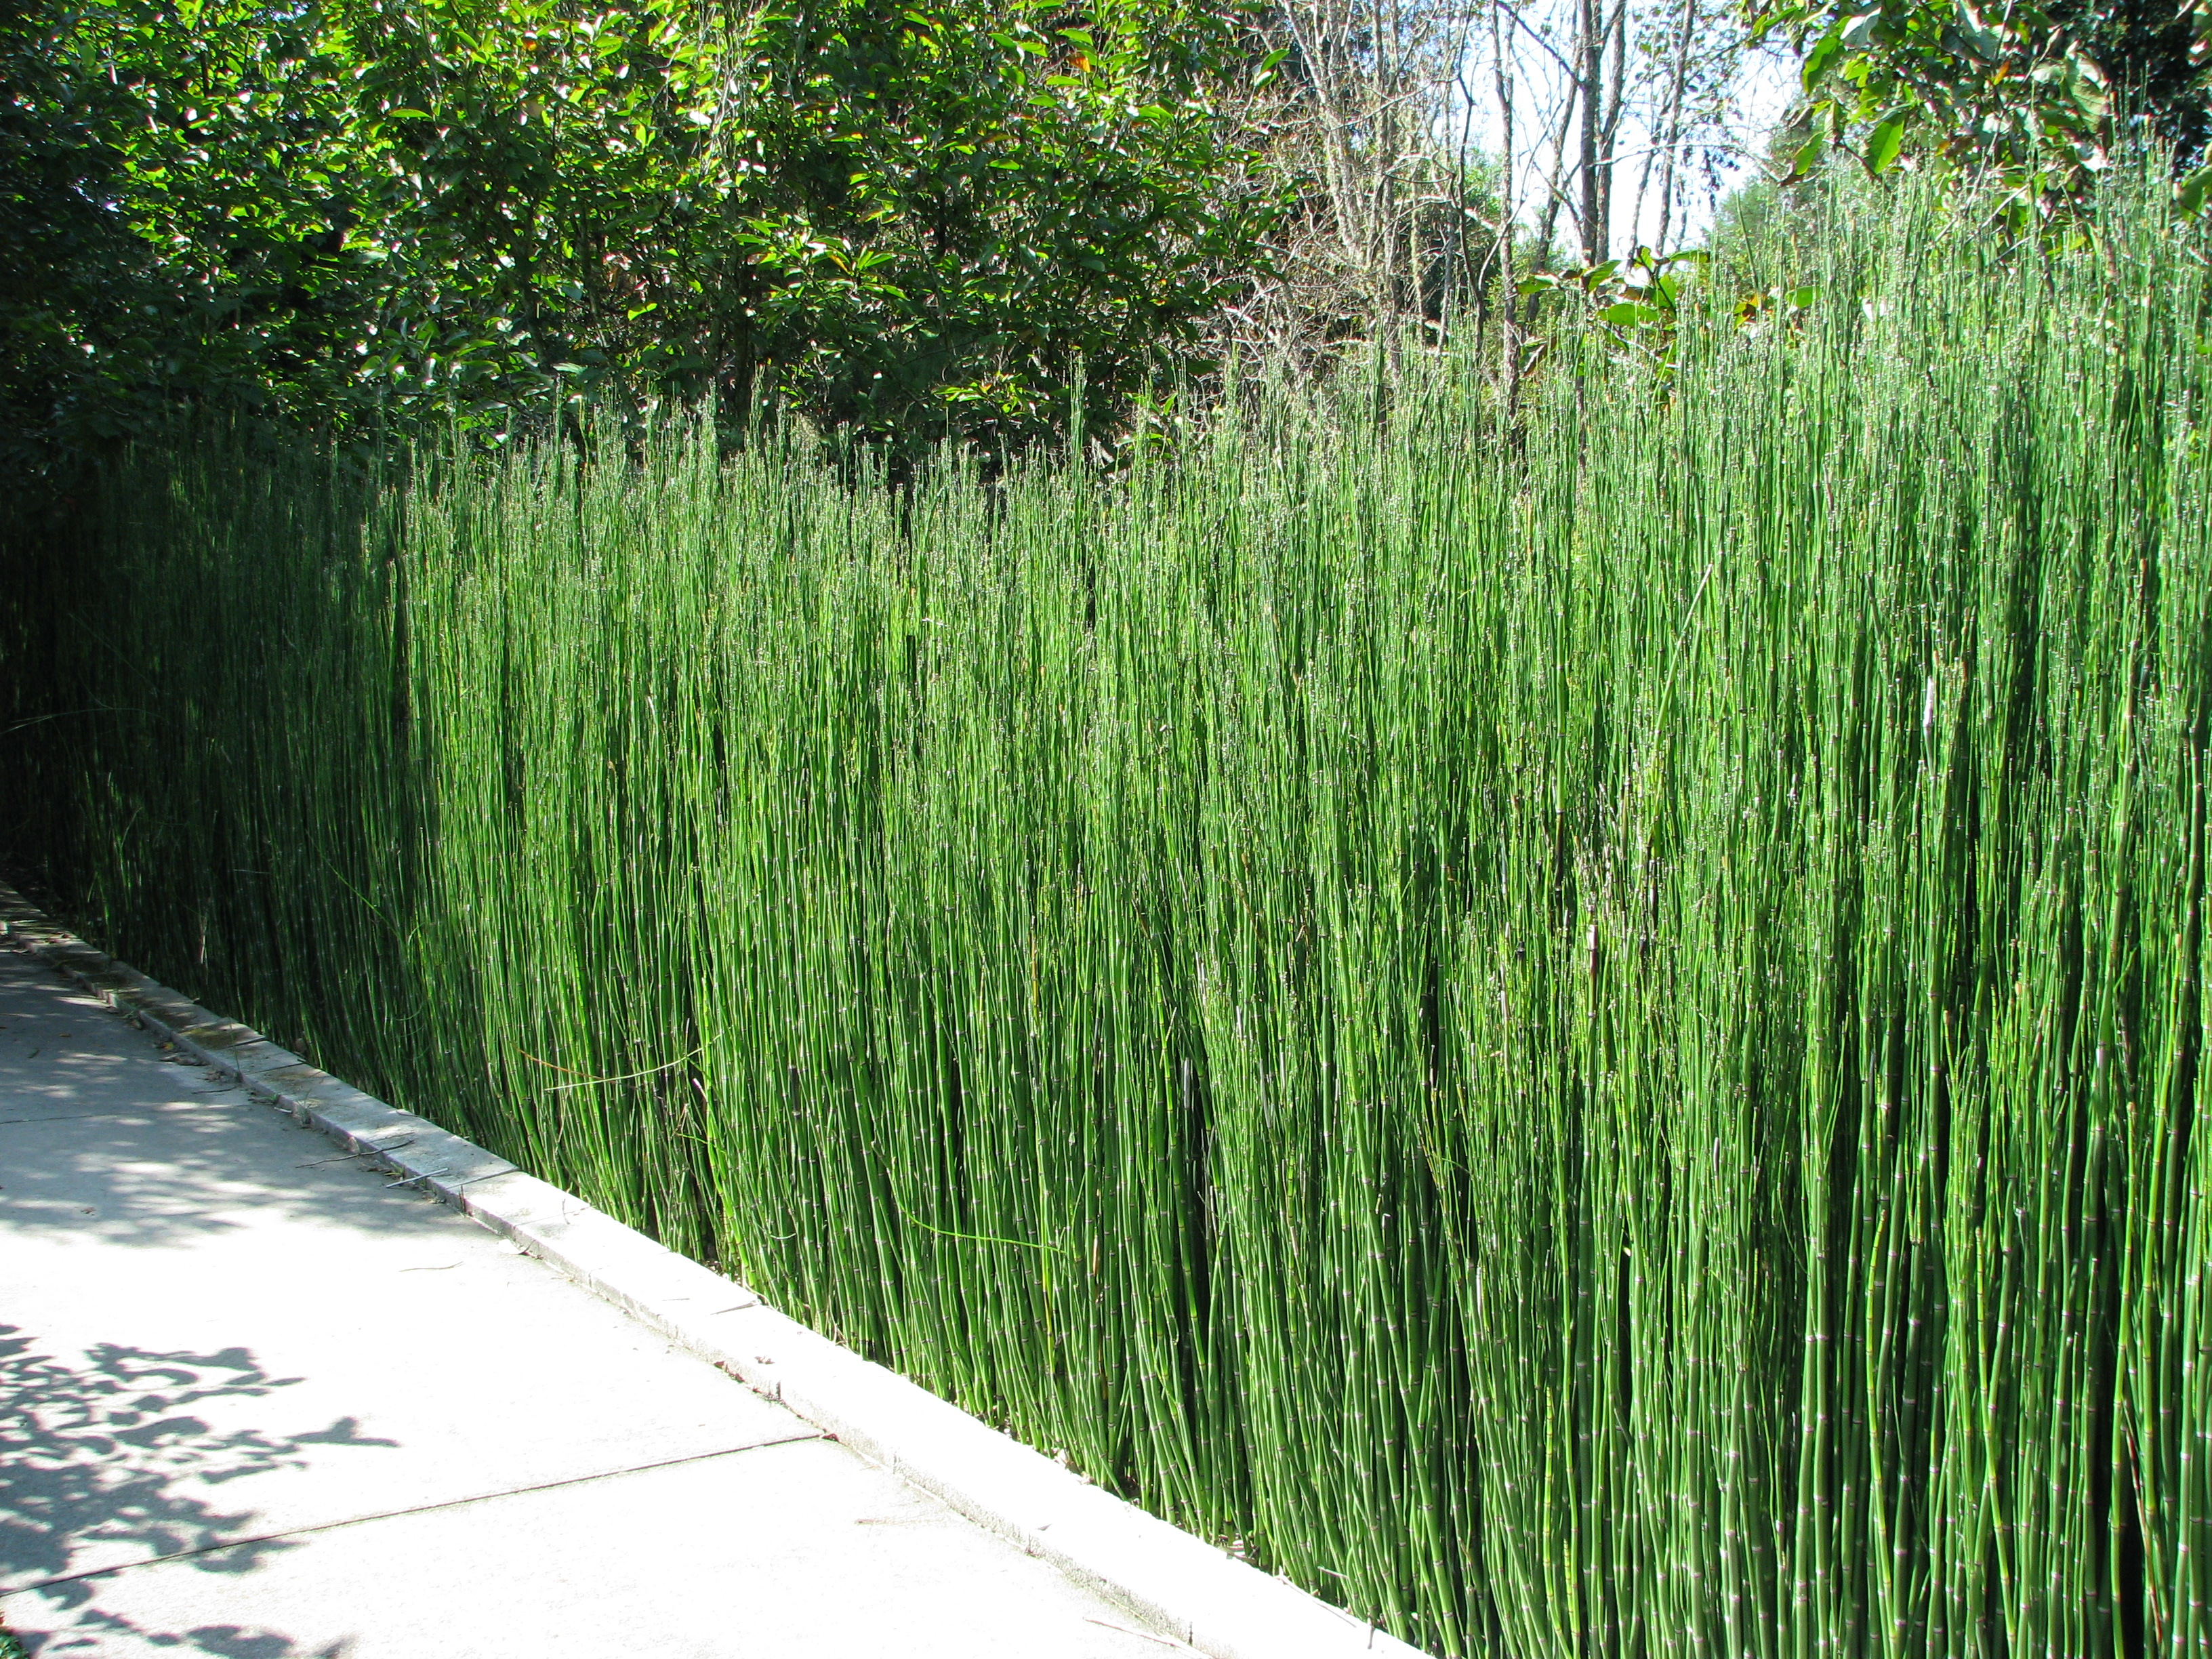 Equisetum on pinterest horse tail bamboo and grass Long grass plants